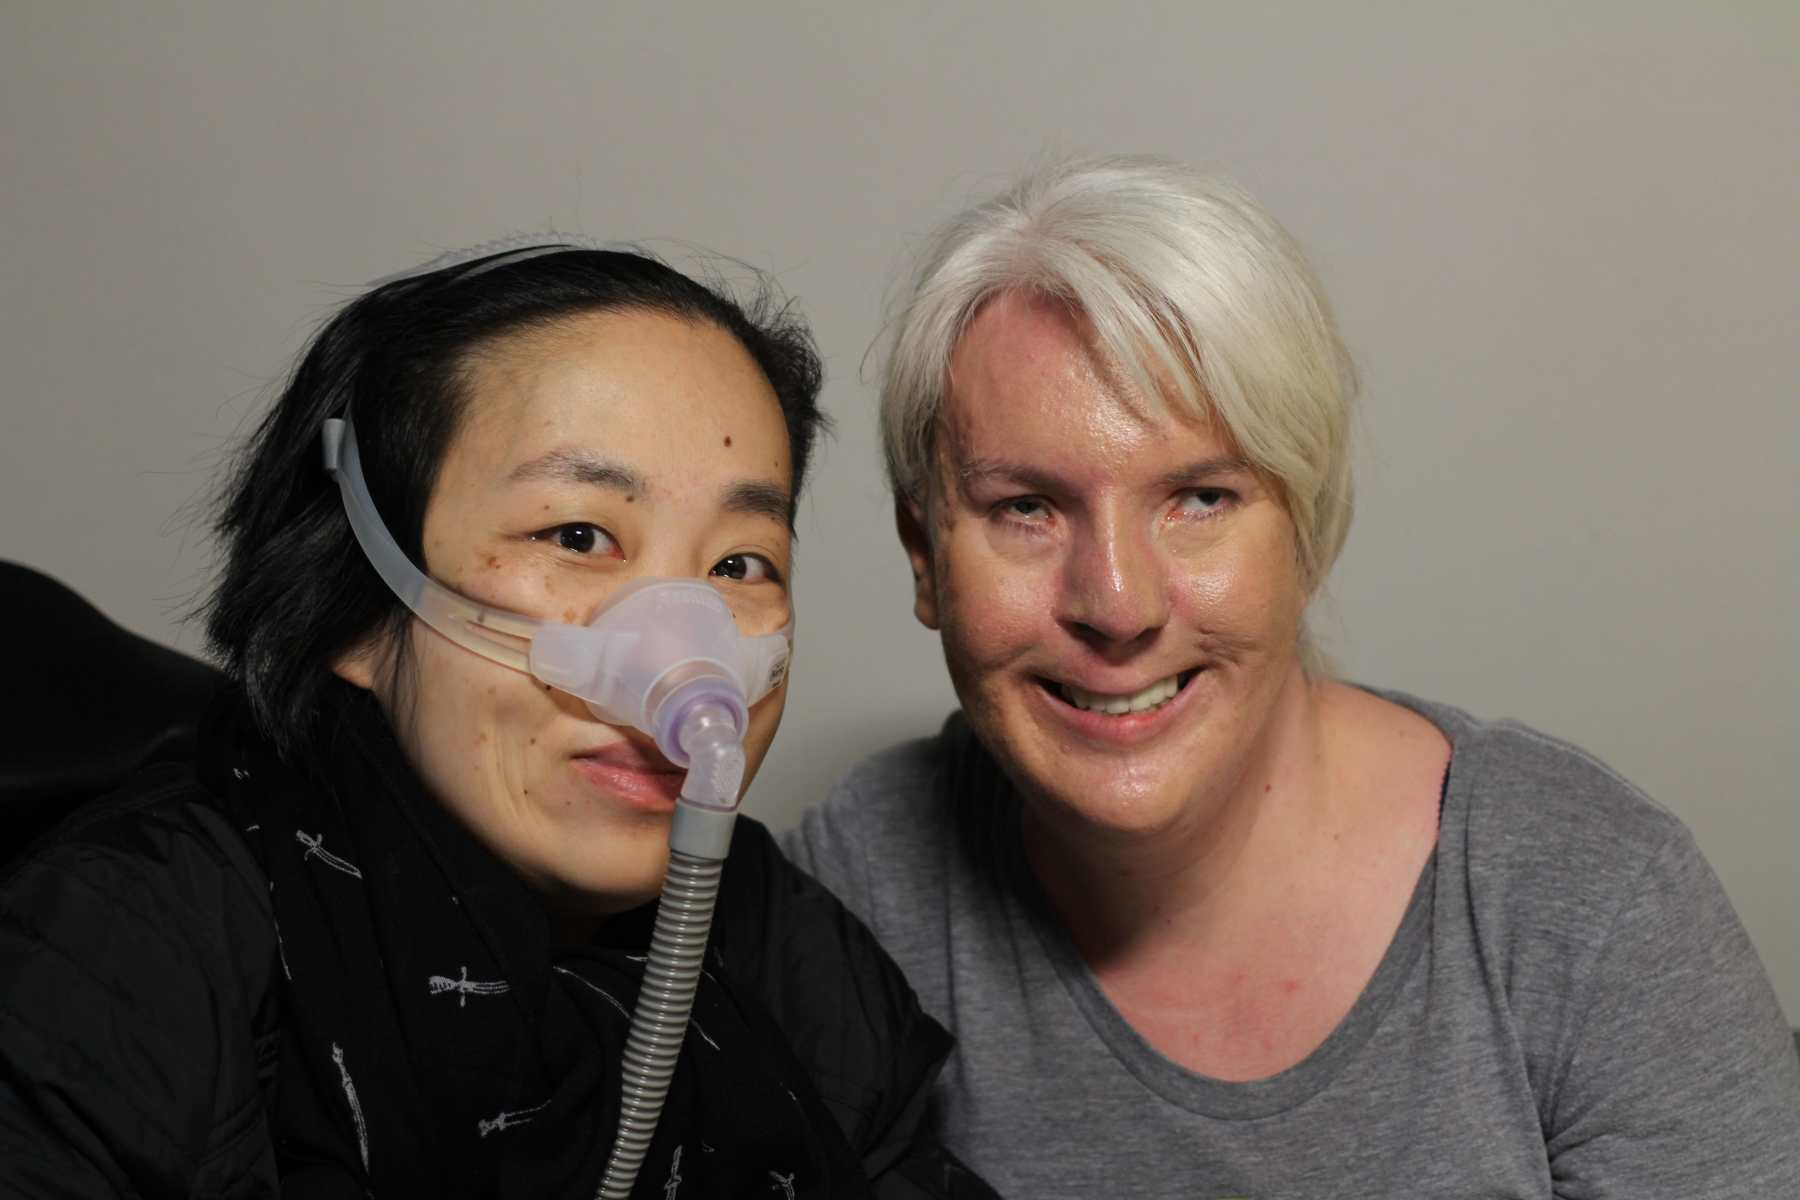 On the left, Alice Wong an Asian American woman wearing a black jacket and black scarf with little white daggers. She is wearing a mask over her nose attached to a gray tube which is connected to her ventilator. On the right is Jennifer Justice, young white woman with very light long blonde hair pulled back. She is wearing a heather gray scoopneck shirt. She is smiling at the camera.